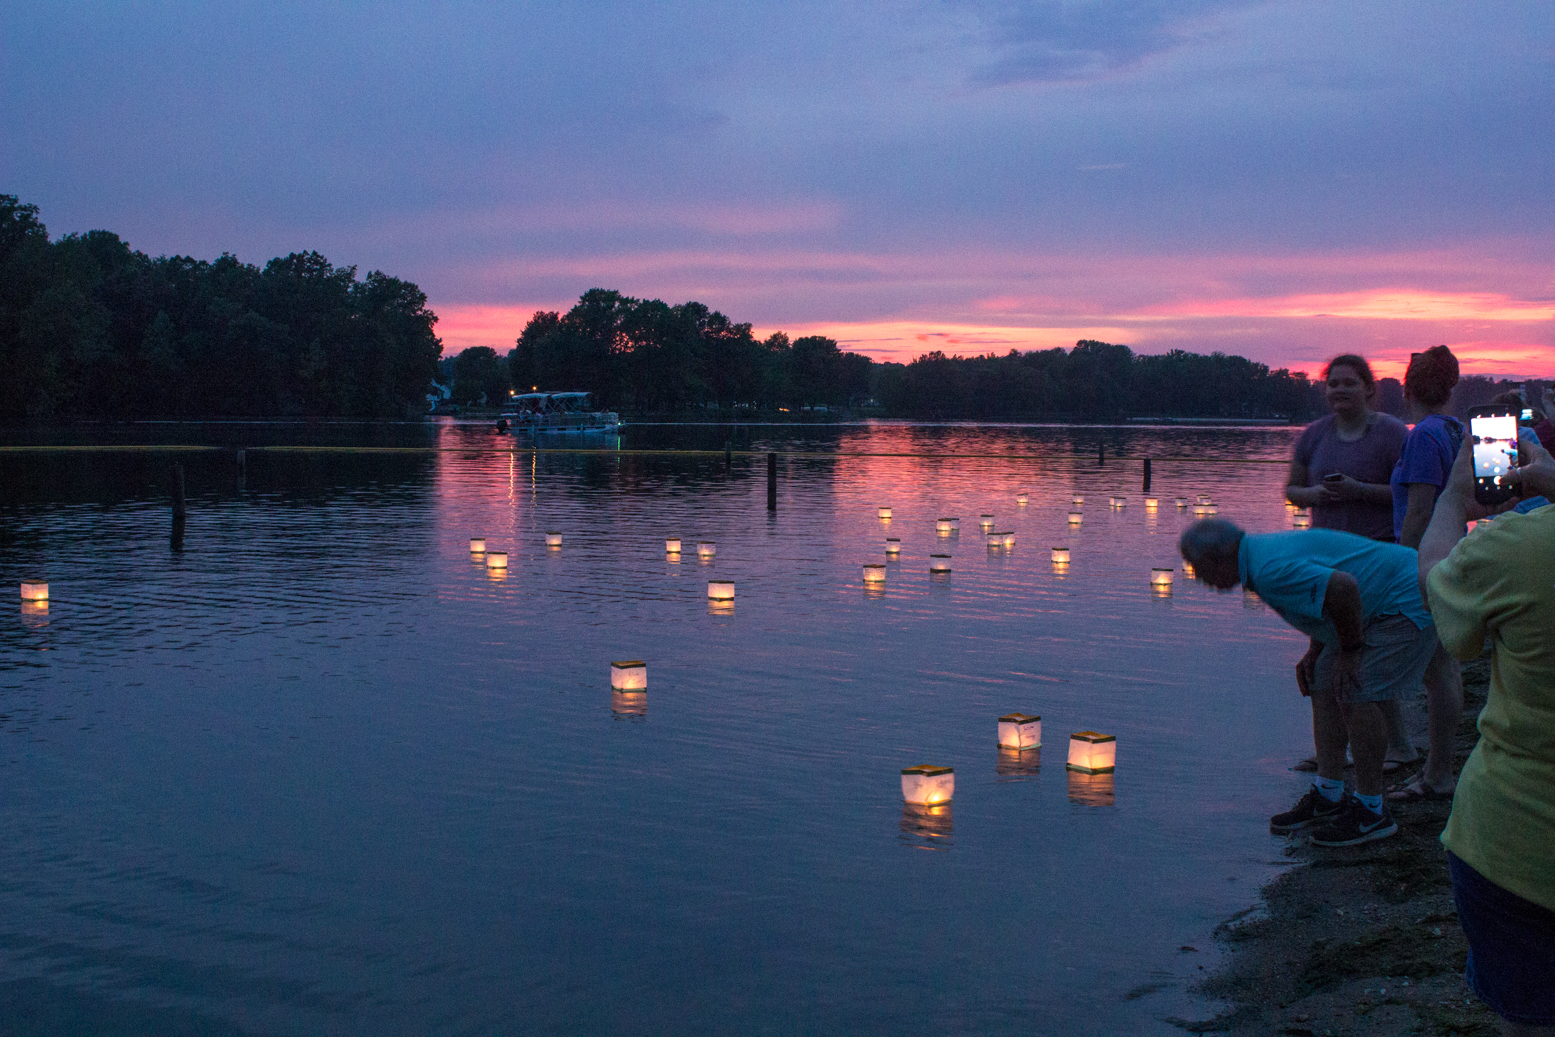 Memorial Day Lantern Lighting Ceremony